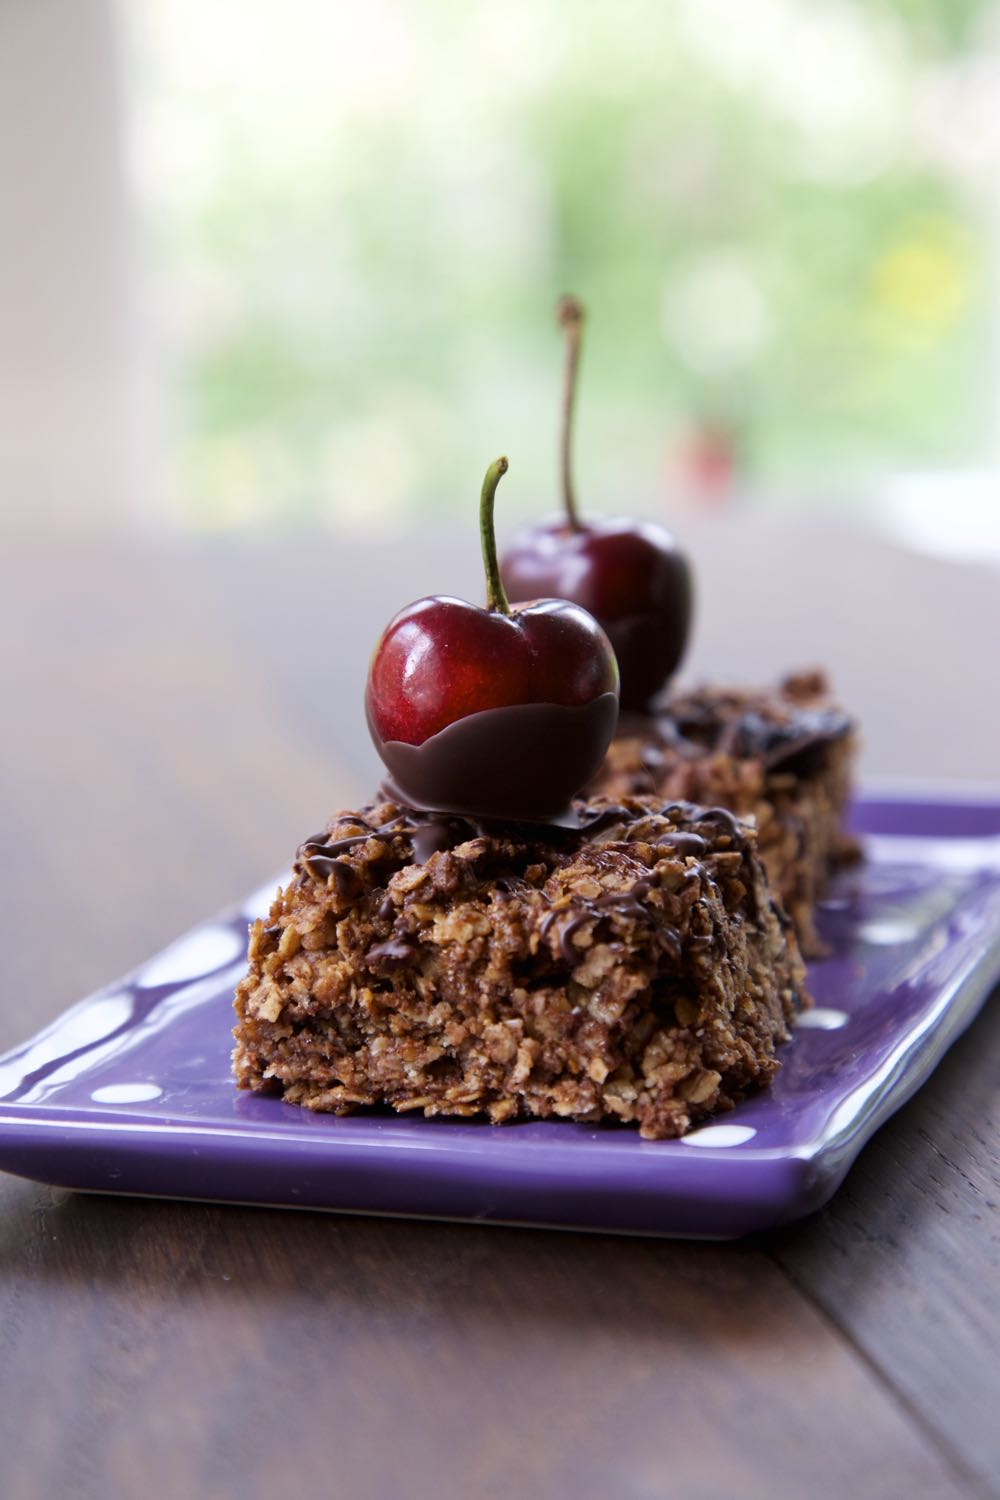 Chocolate Cherry Flapjack topped with whole chocolate coated cherries.